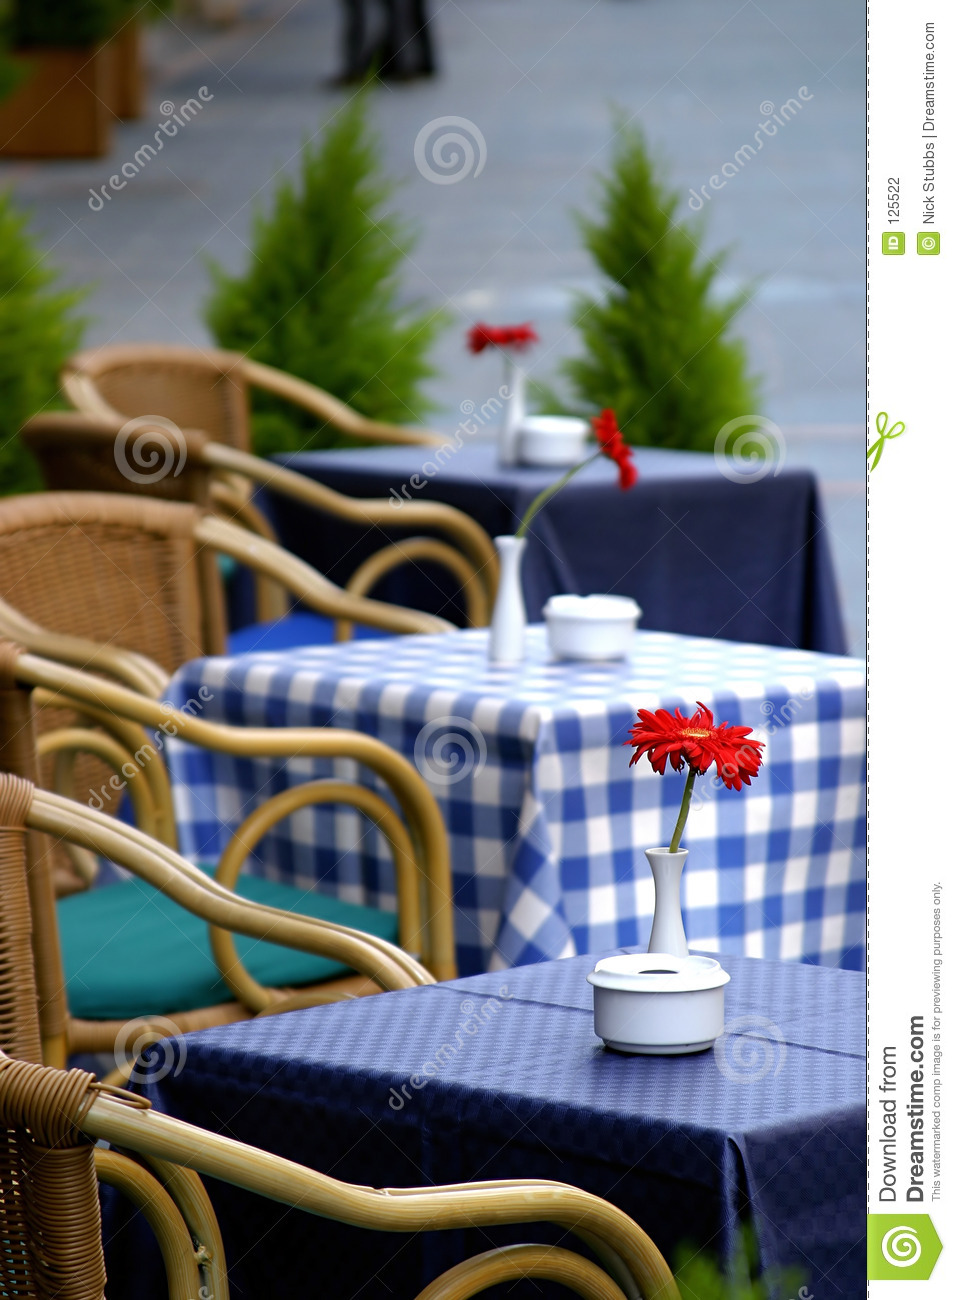 Empty tables with checkered table cloths on the street with roses on